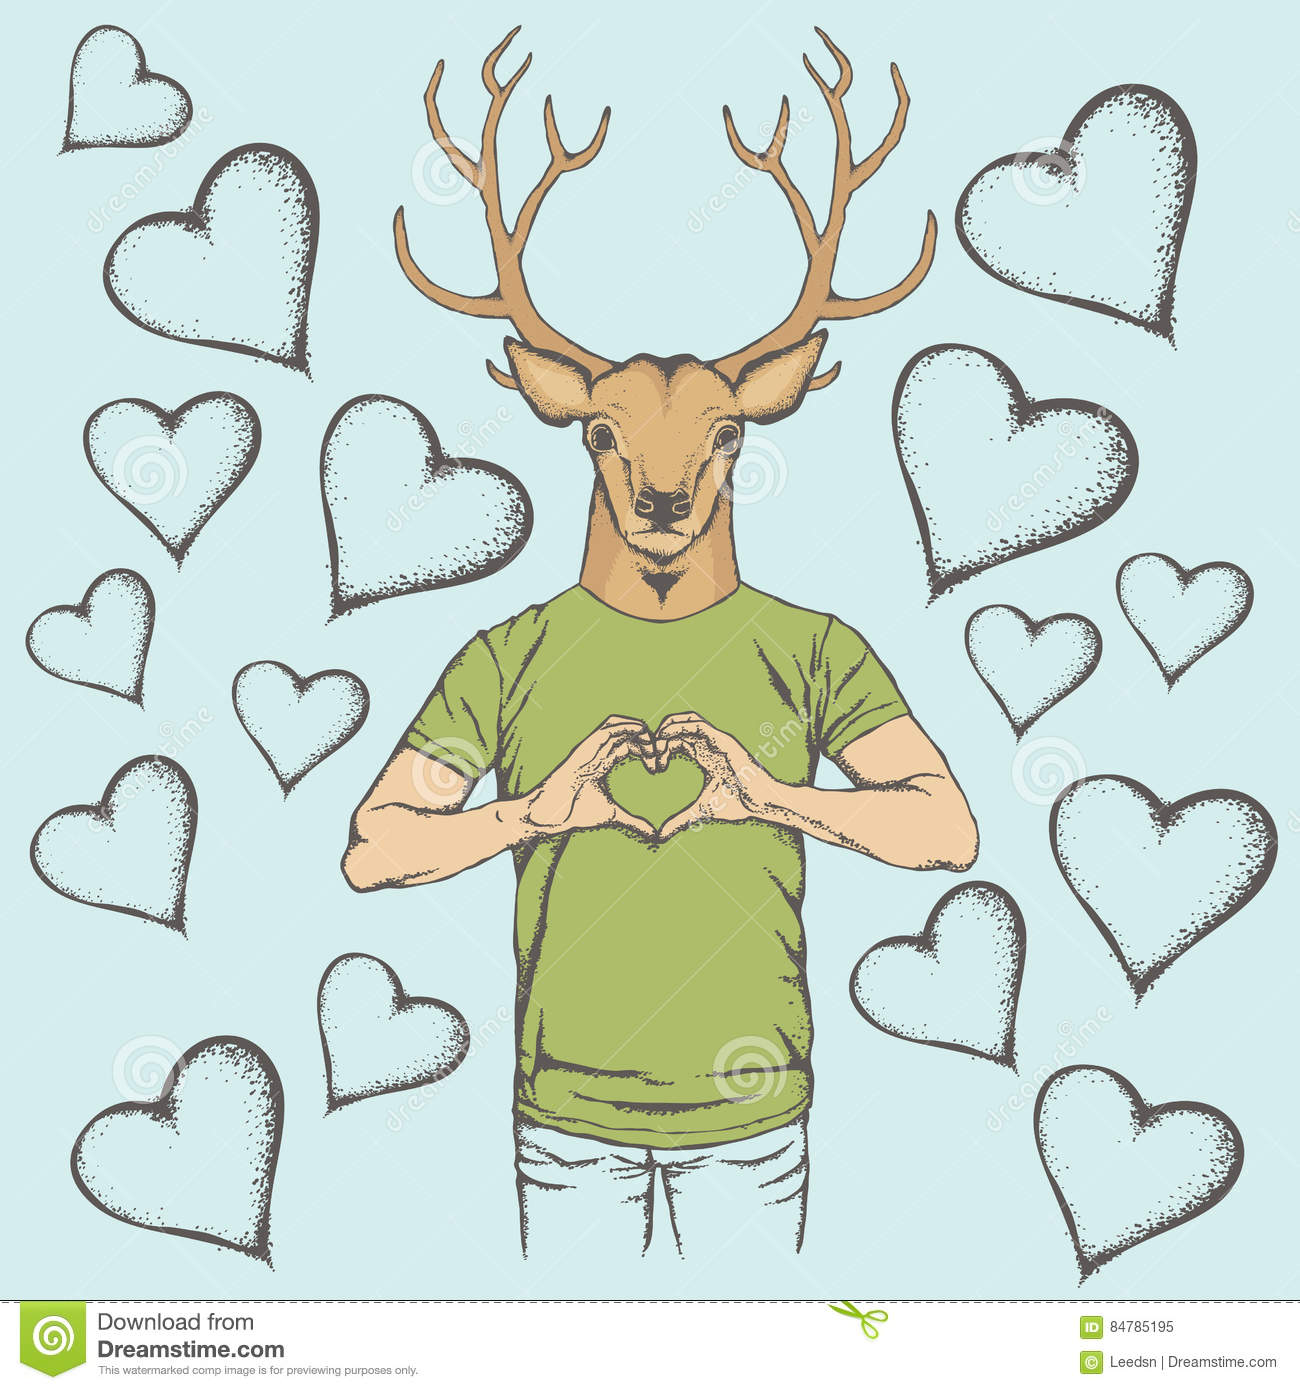 Deer Valentine Day Vector Concept Stock Vector - Illustration of ...